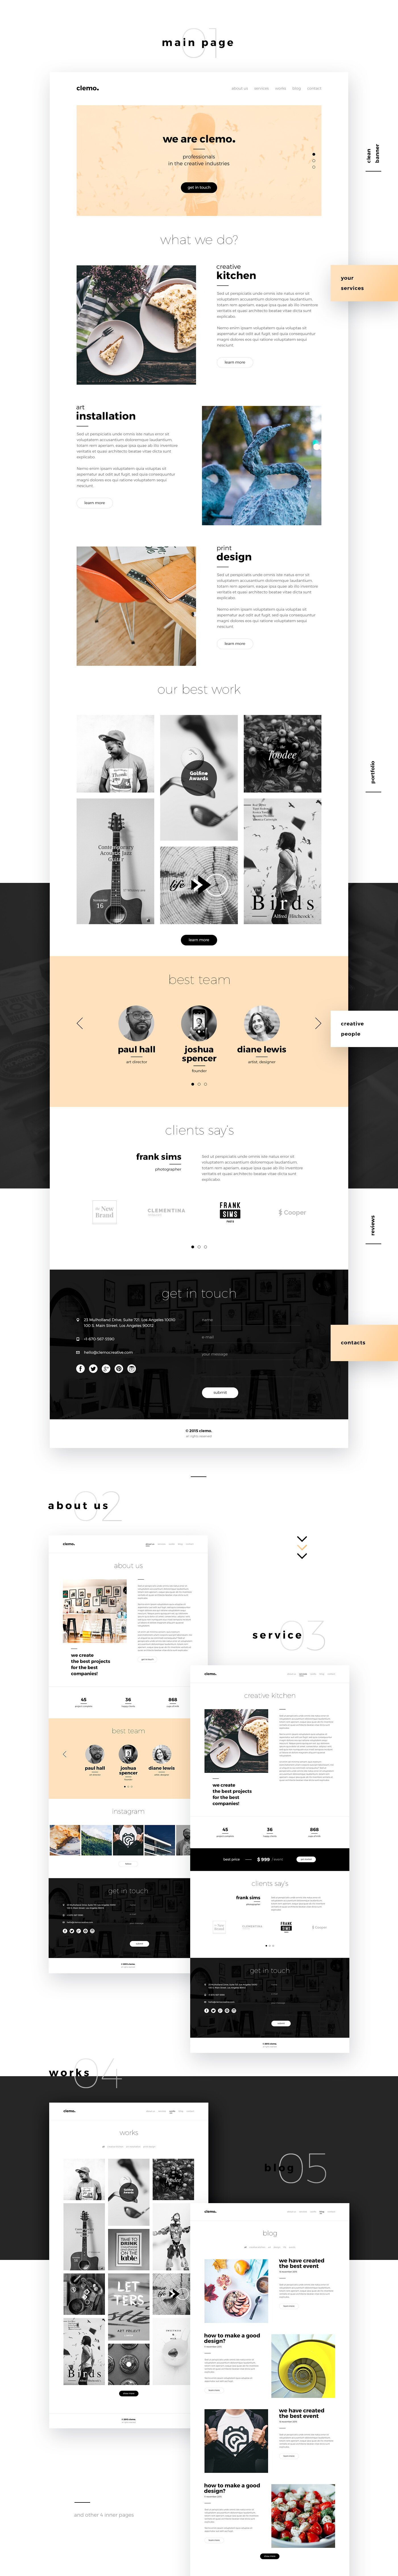 Clemo – Free PSD Template